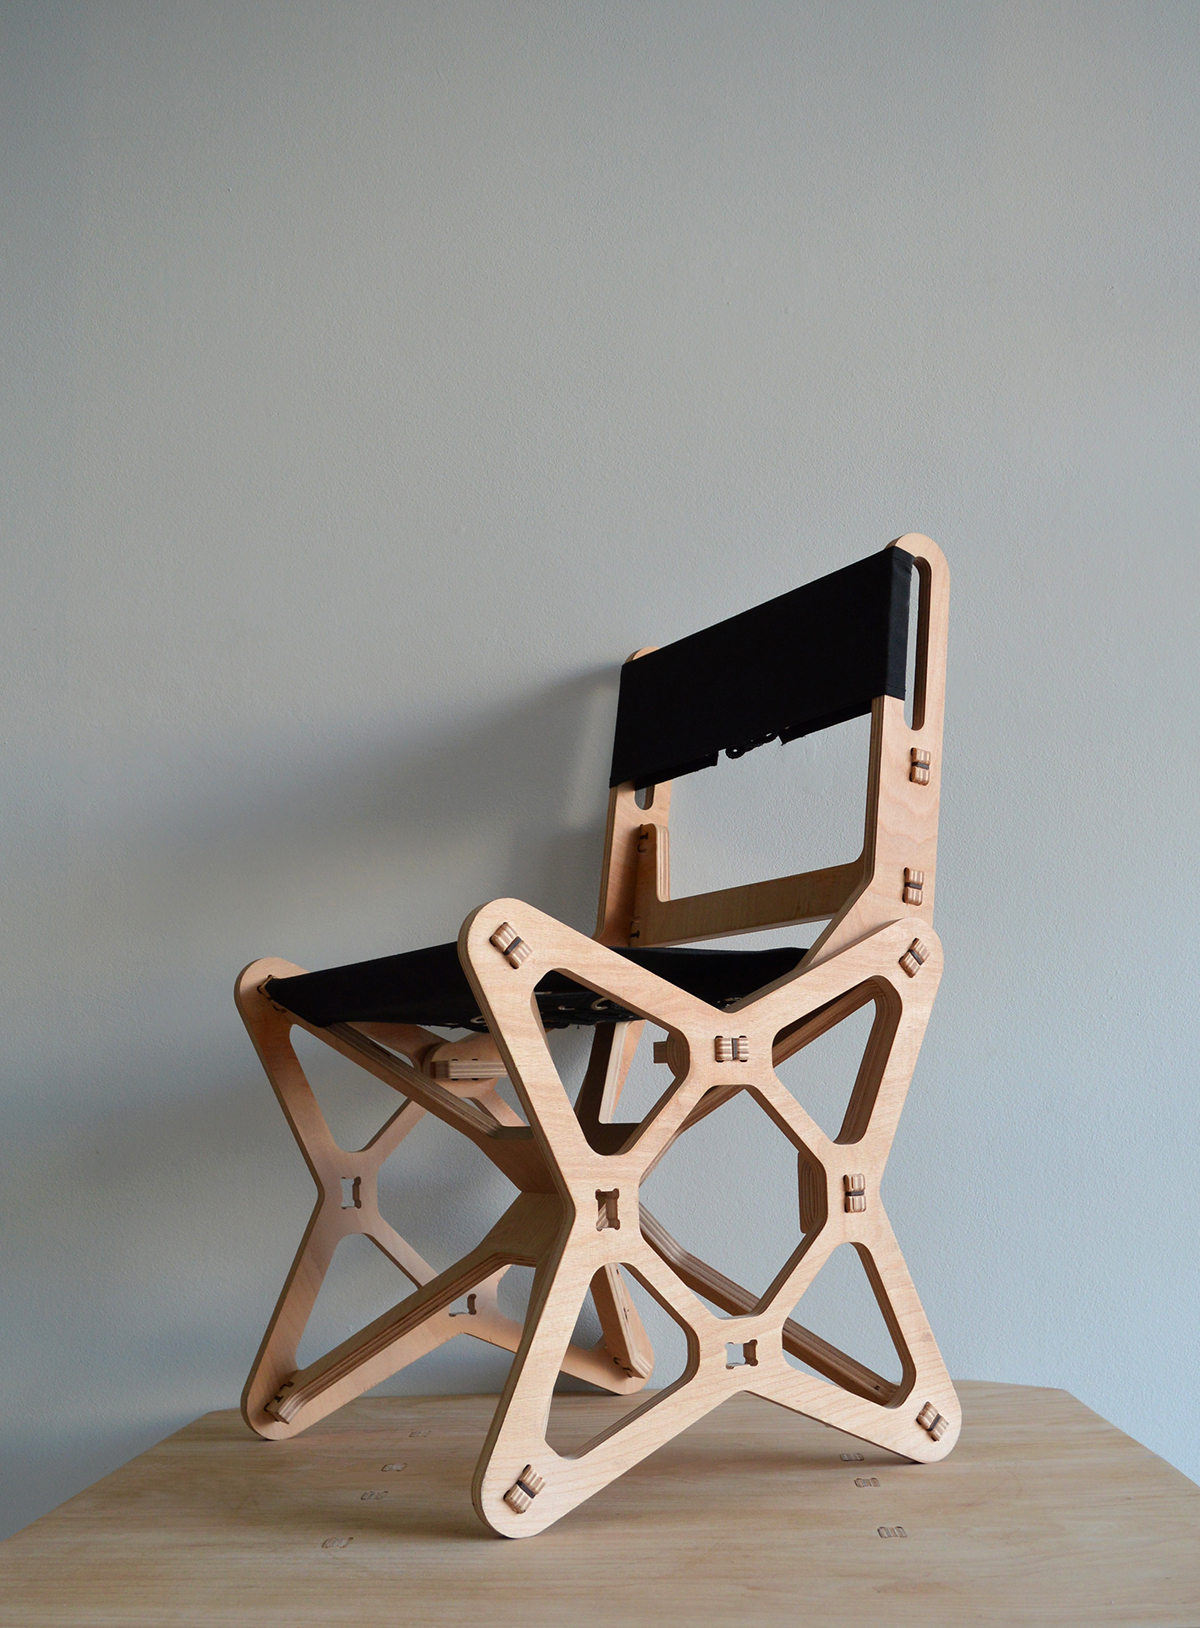 Peachy The New Electron Chair On Behance Ibusinesslaw Wood Chair Design Ideas Ibusinesslaworg